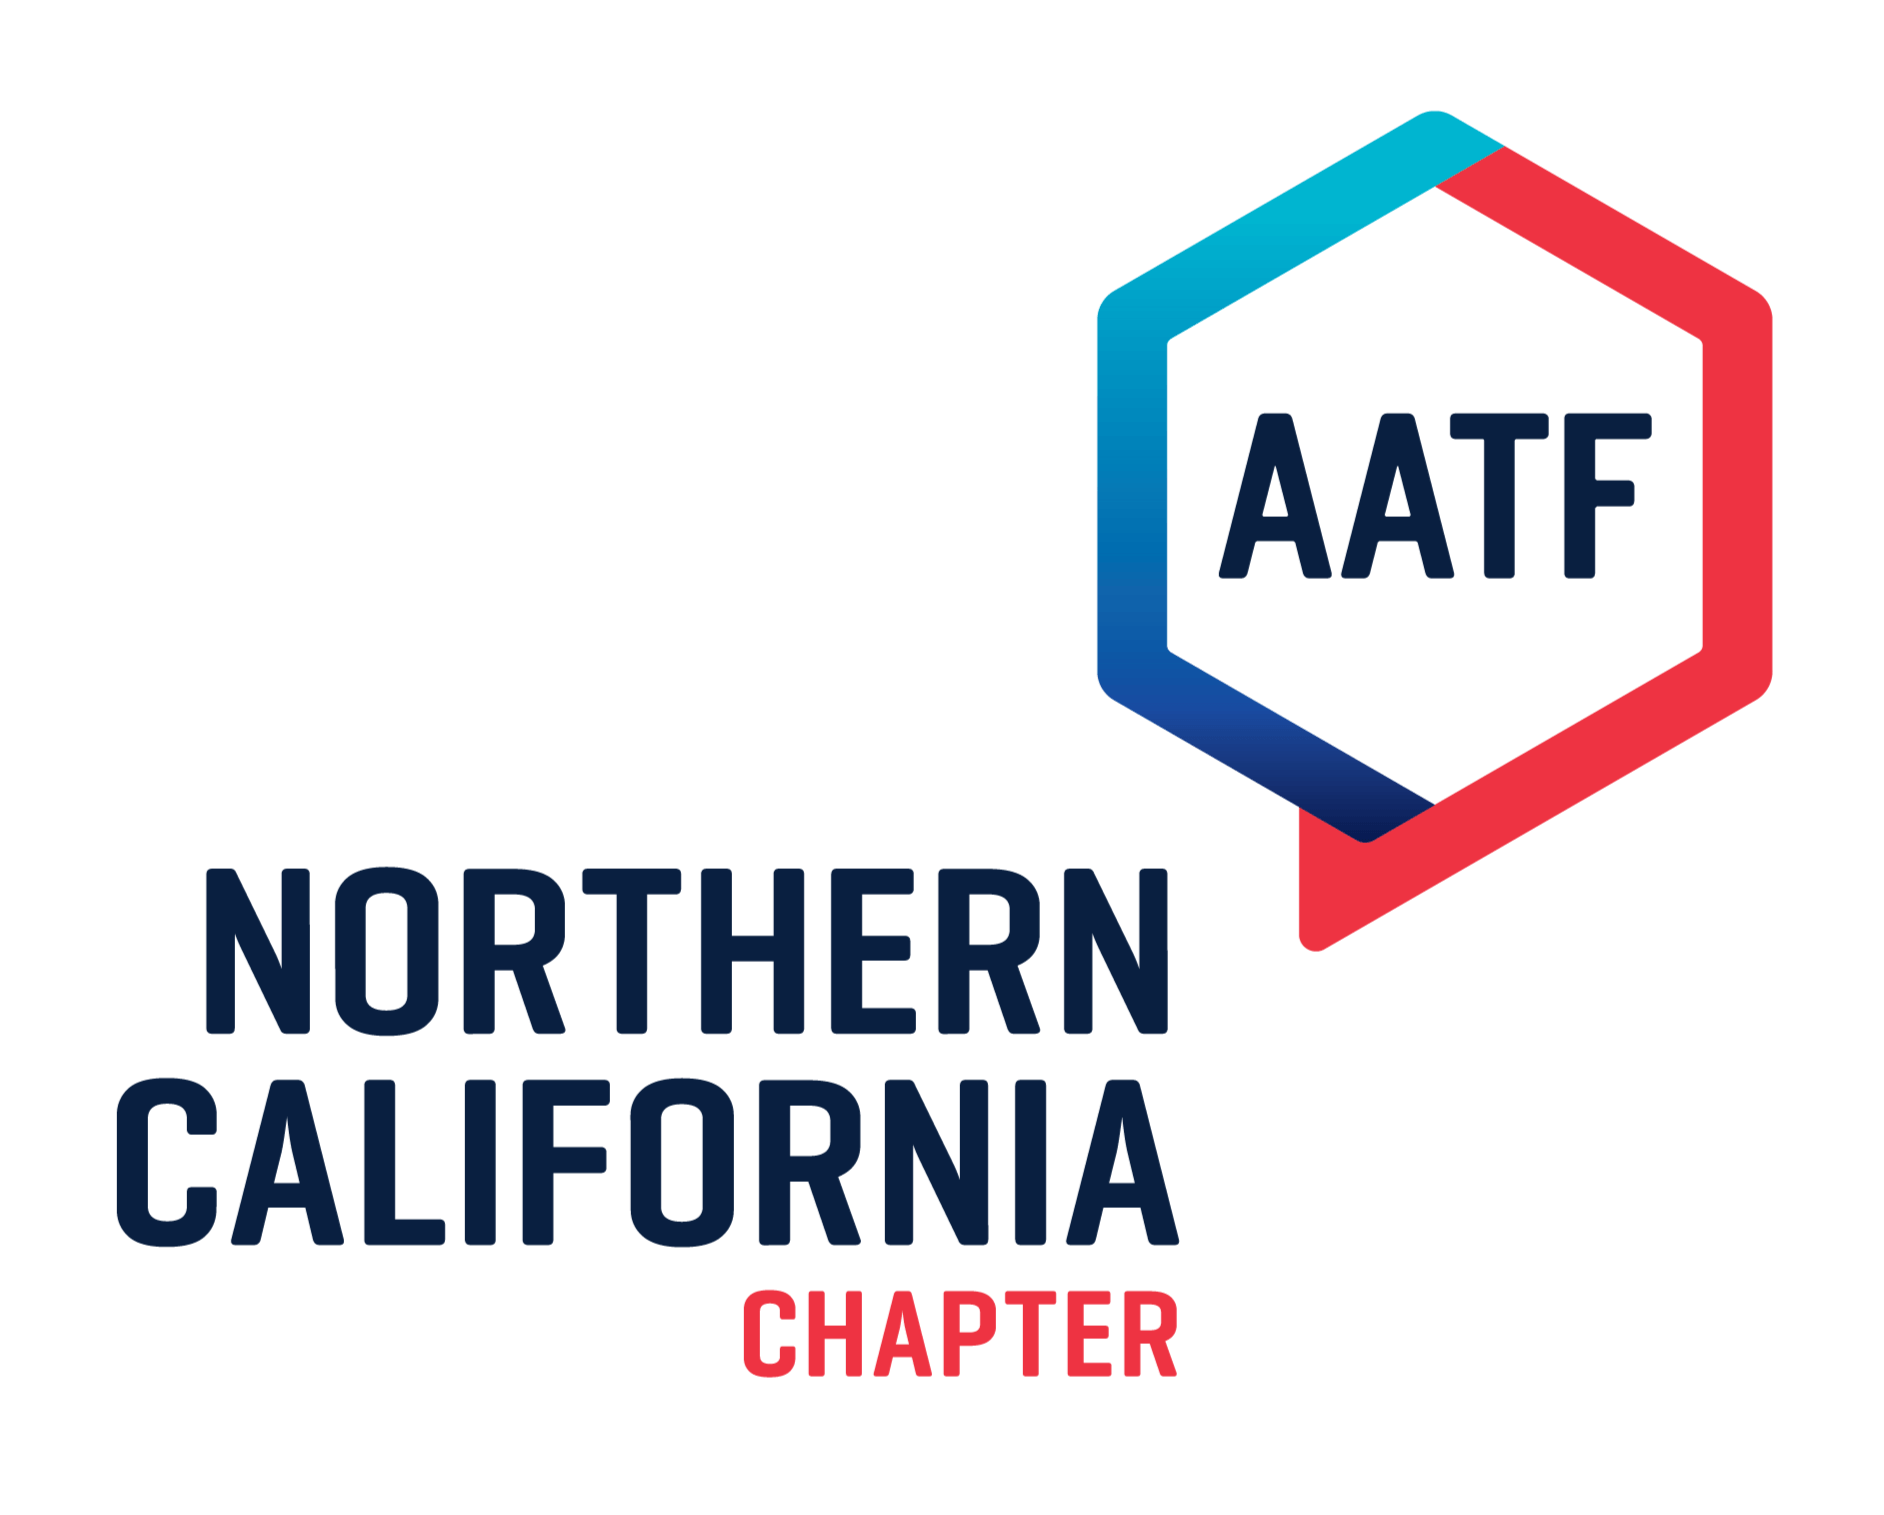 AATF Northern California Chapter